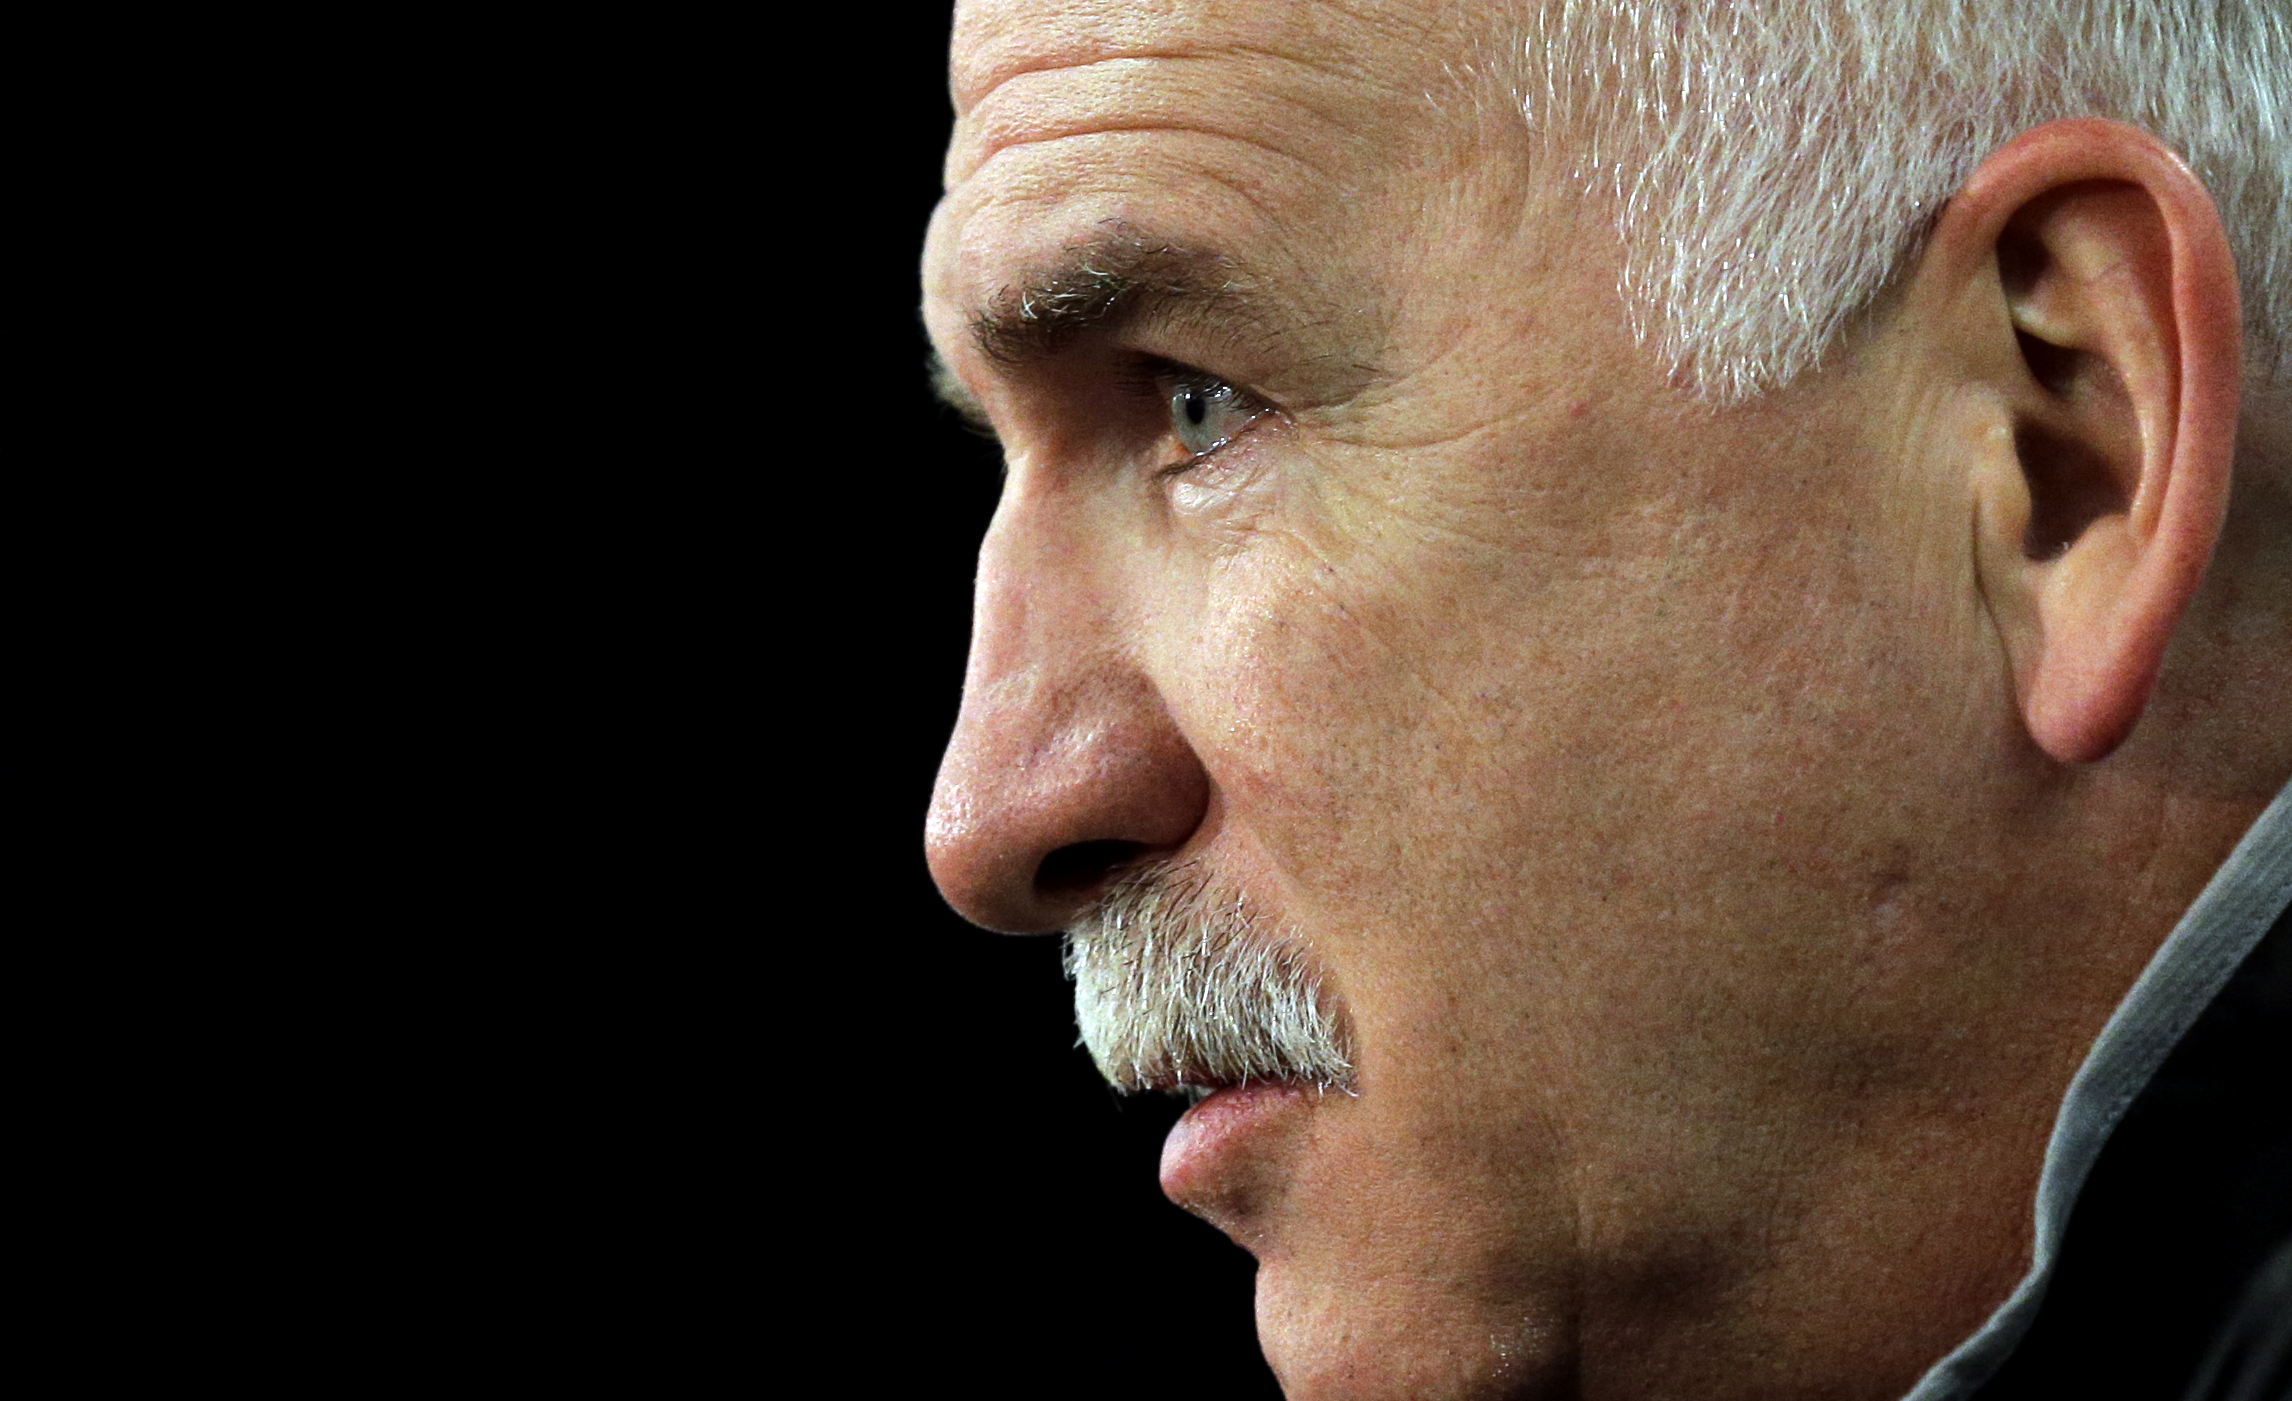 Chicago Blackhawks head coach Joel Quenneville listens to questions during a news conference, Sunday, June 7, 2015, in Chicago. The Blackhawks and the Tampa Bay Lightning are tied 1-1 in the NHL hockey Stanley Cup Final after the Tampa Bay Lightning defea